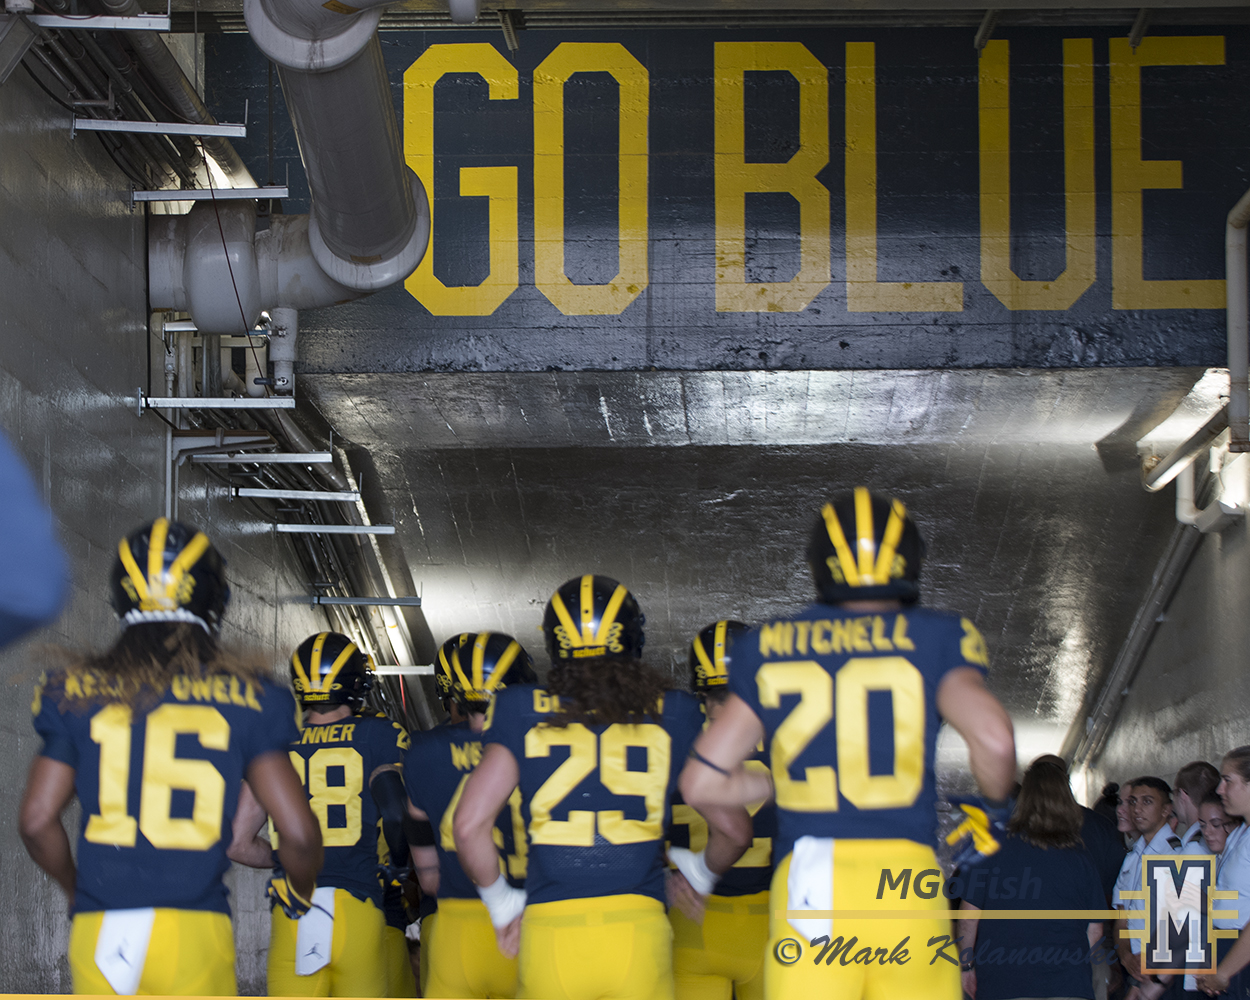 Michigan players running down the Big House tunnel under the Go Blue signs. Photo: Mark Kolanowski/MGoFish